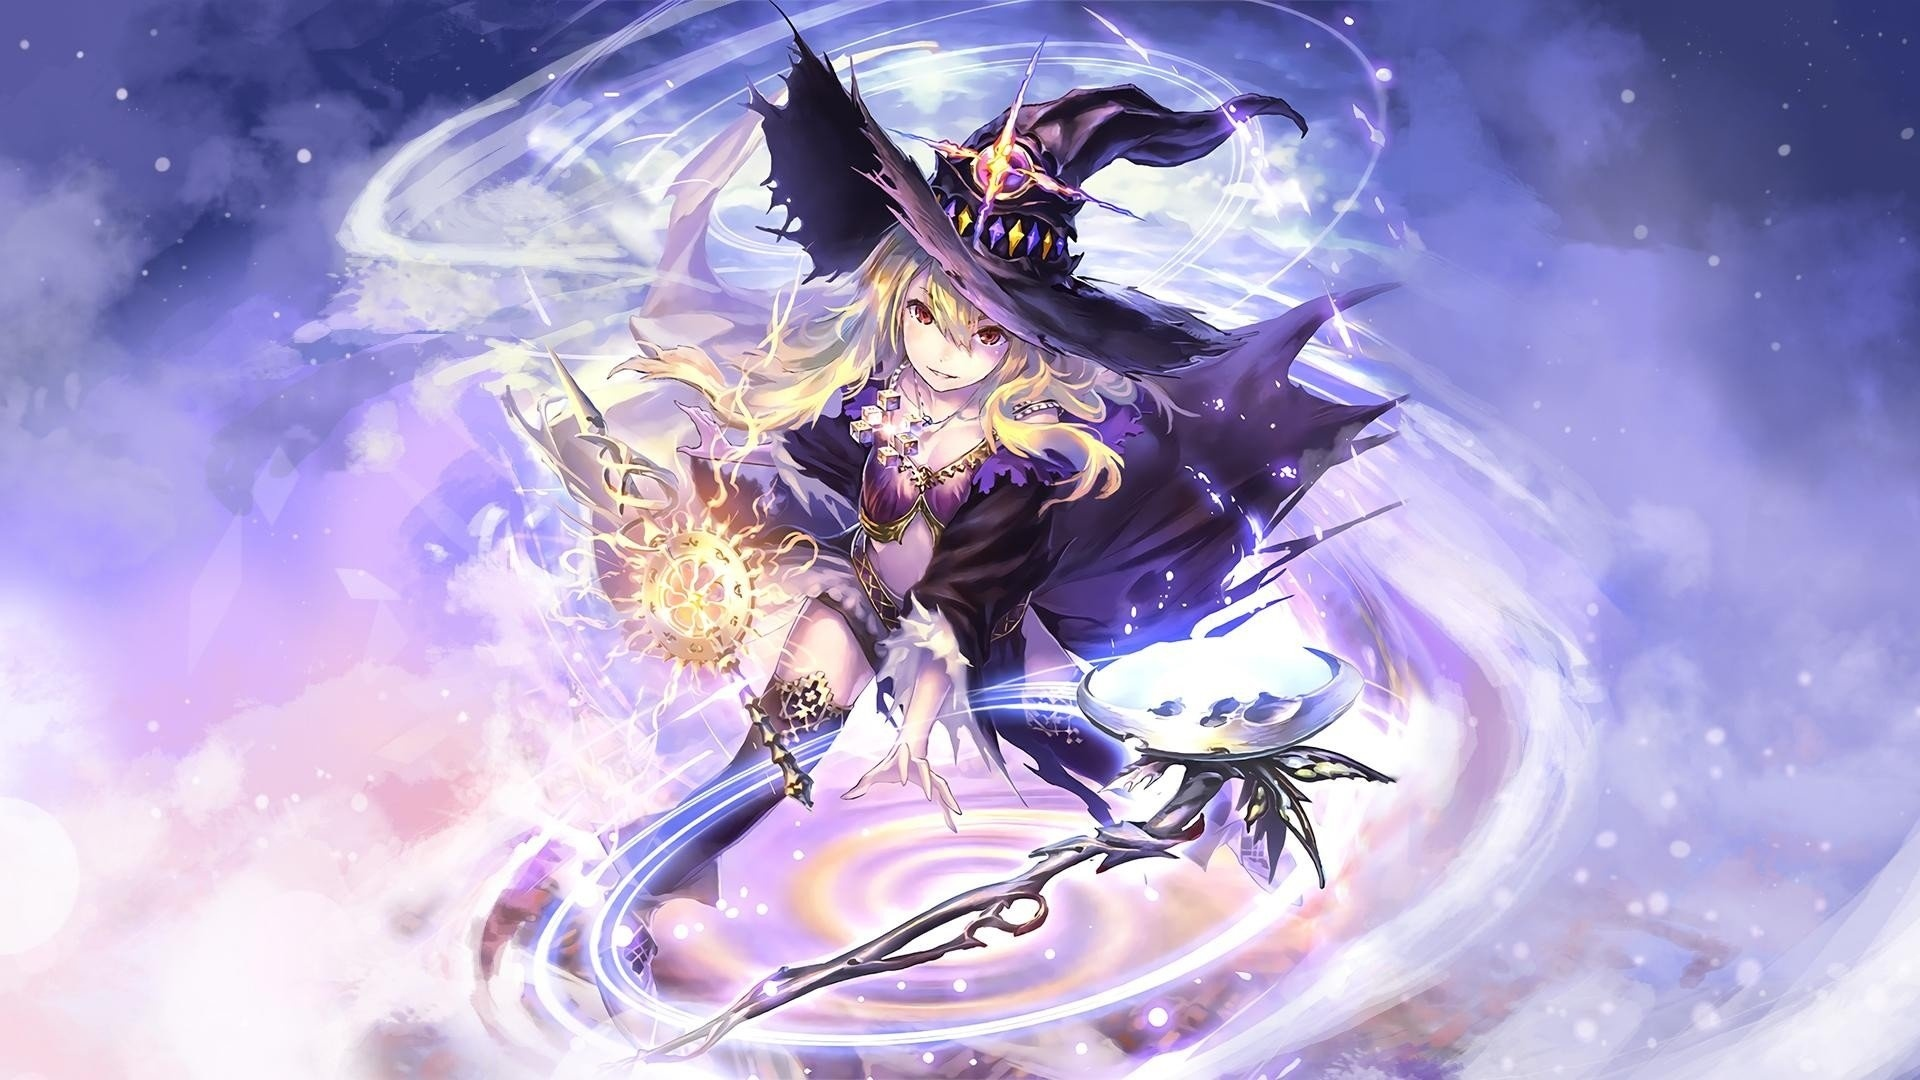 Anime Girl Magician Background